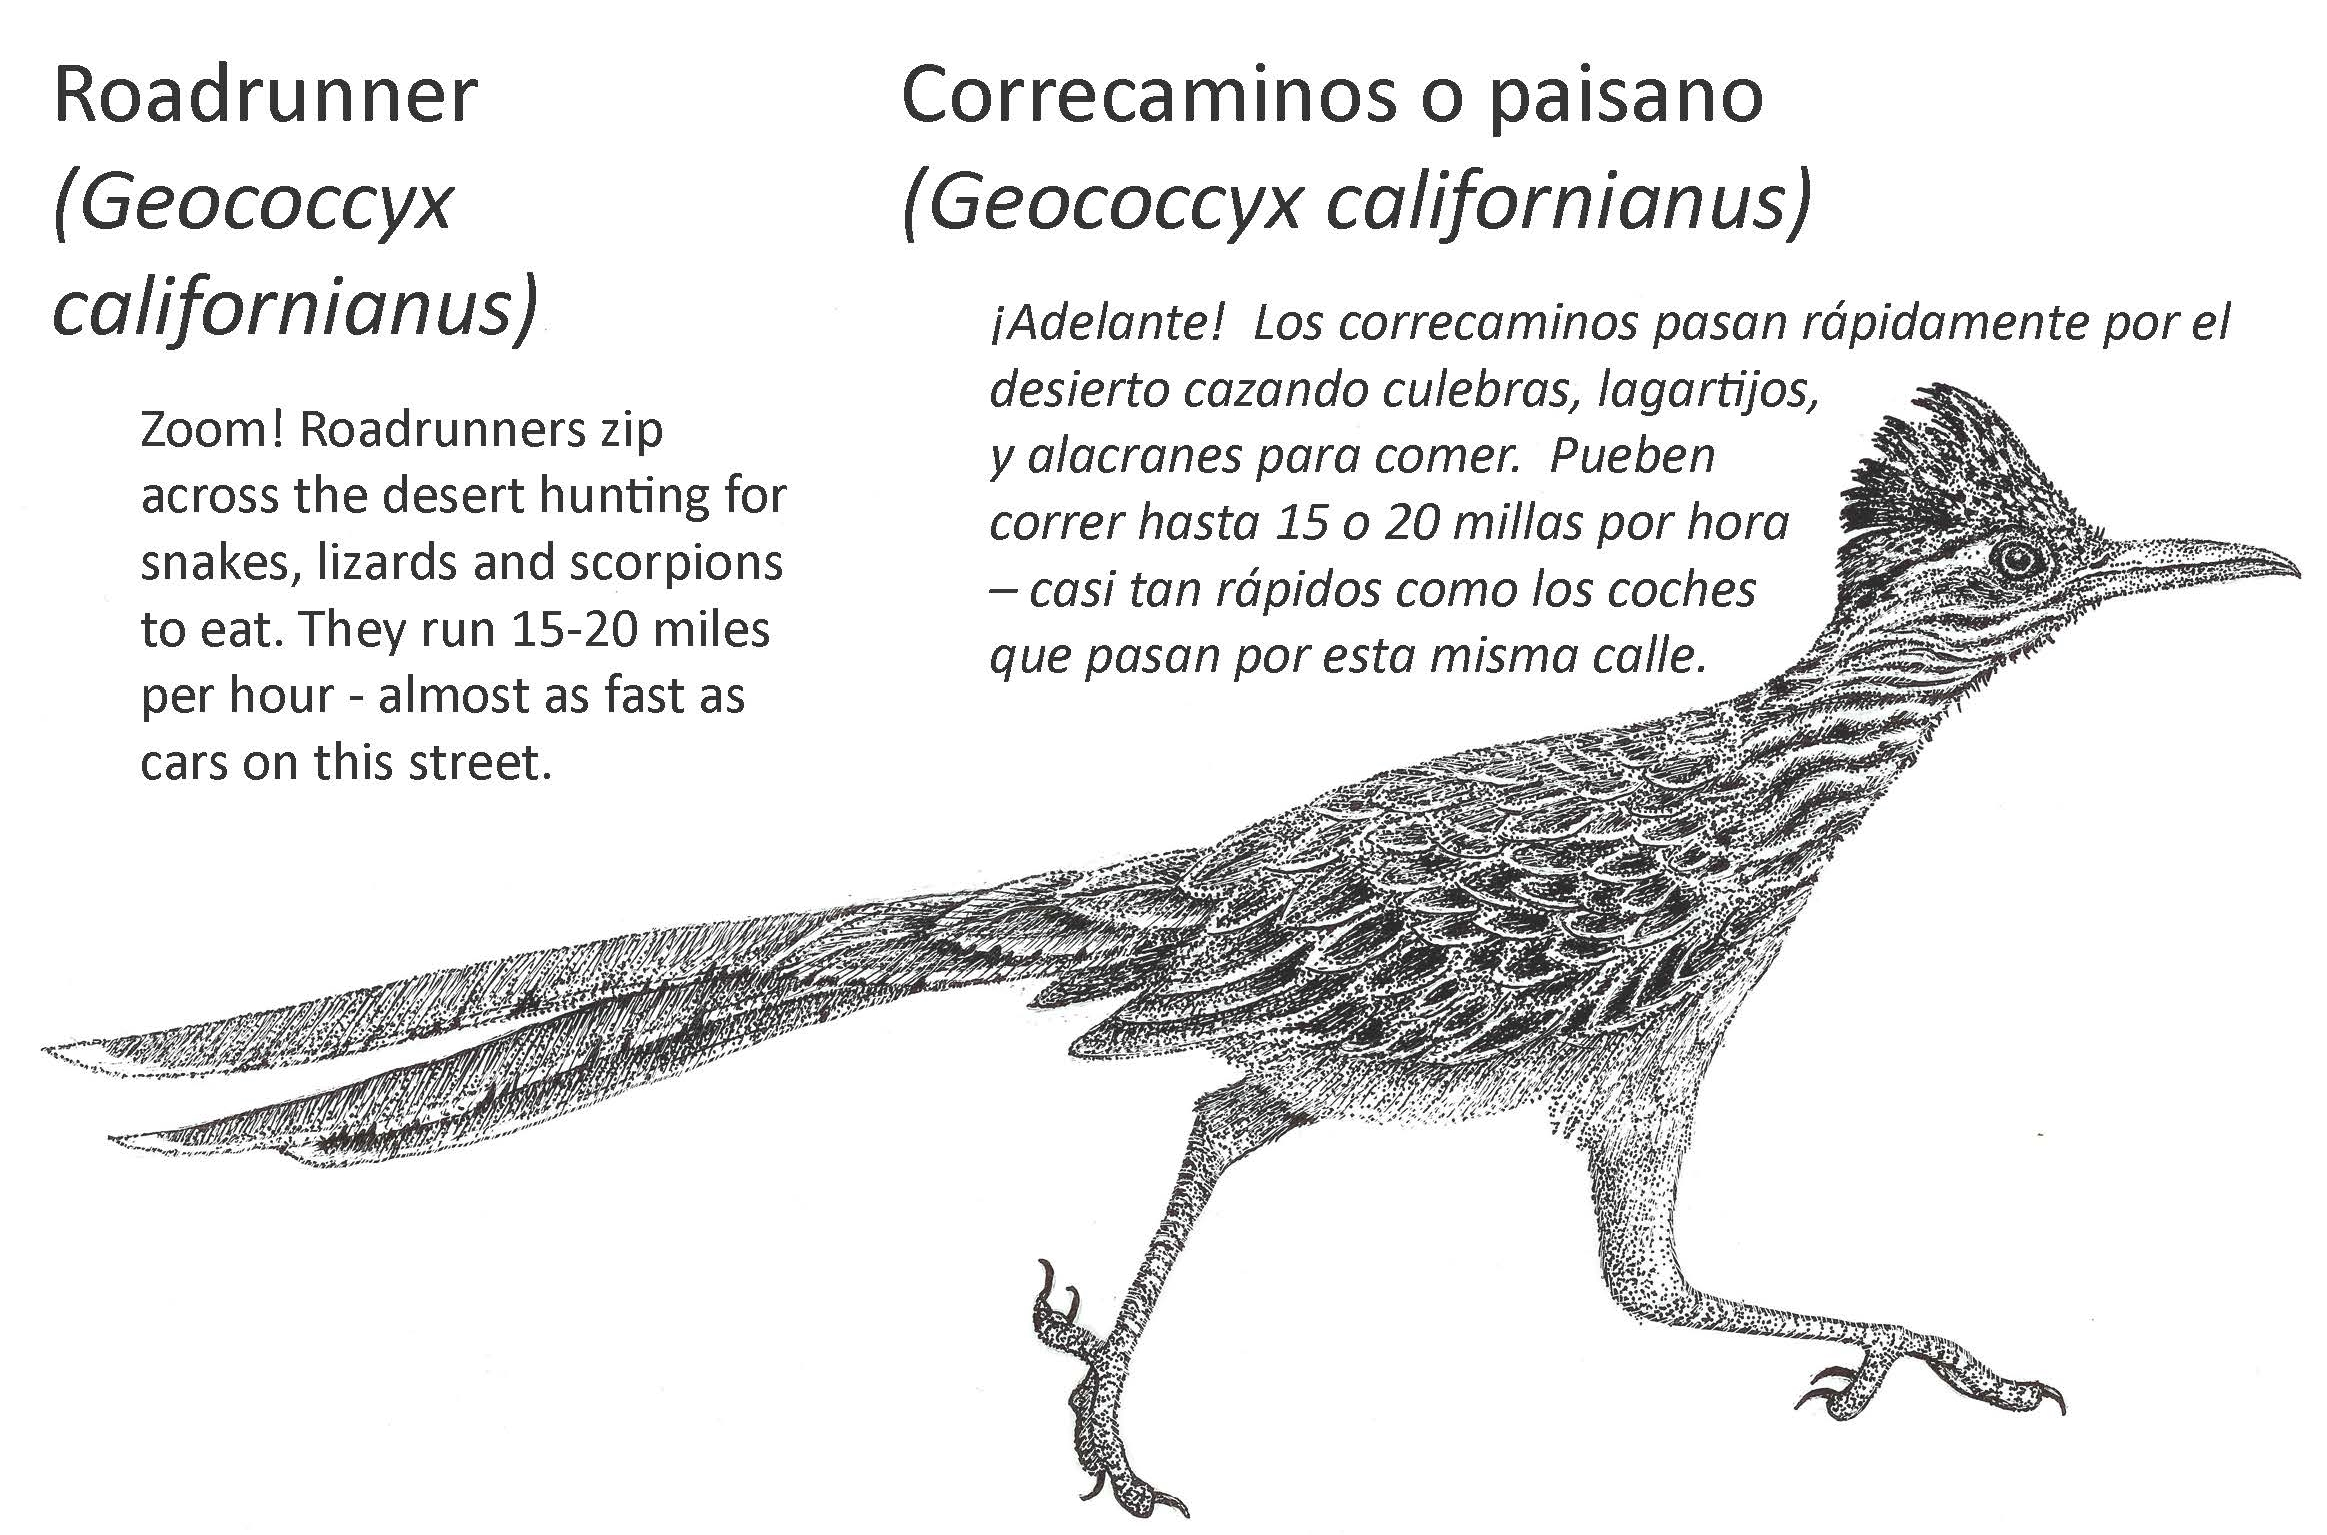 Roadrunner informational sign